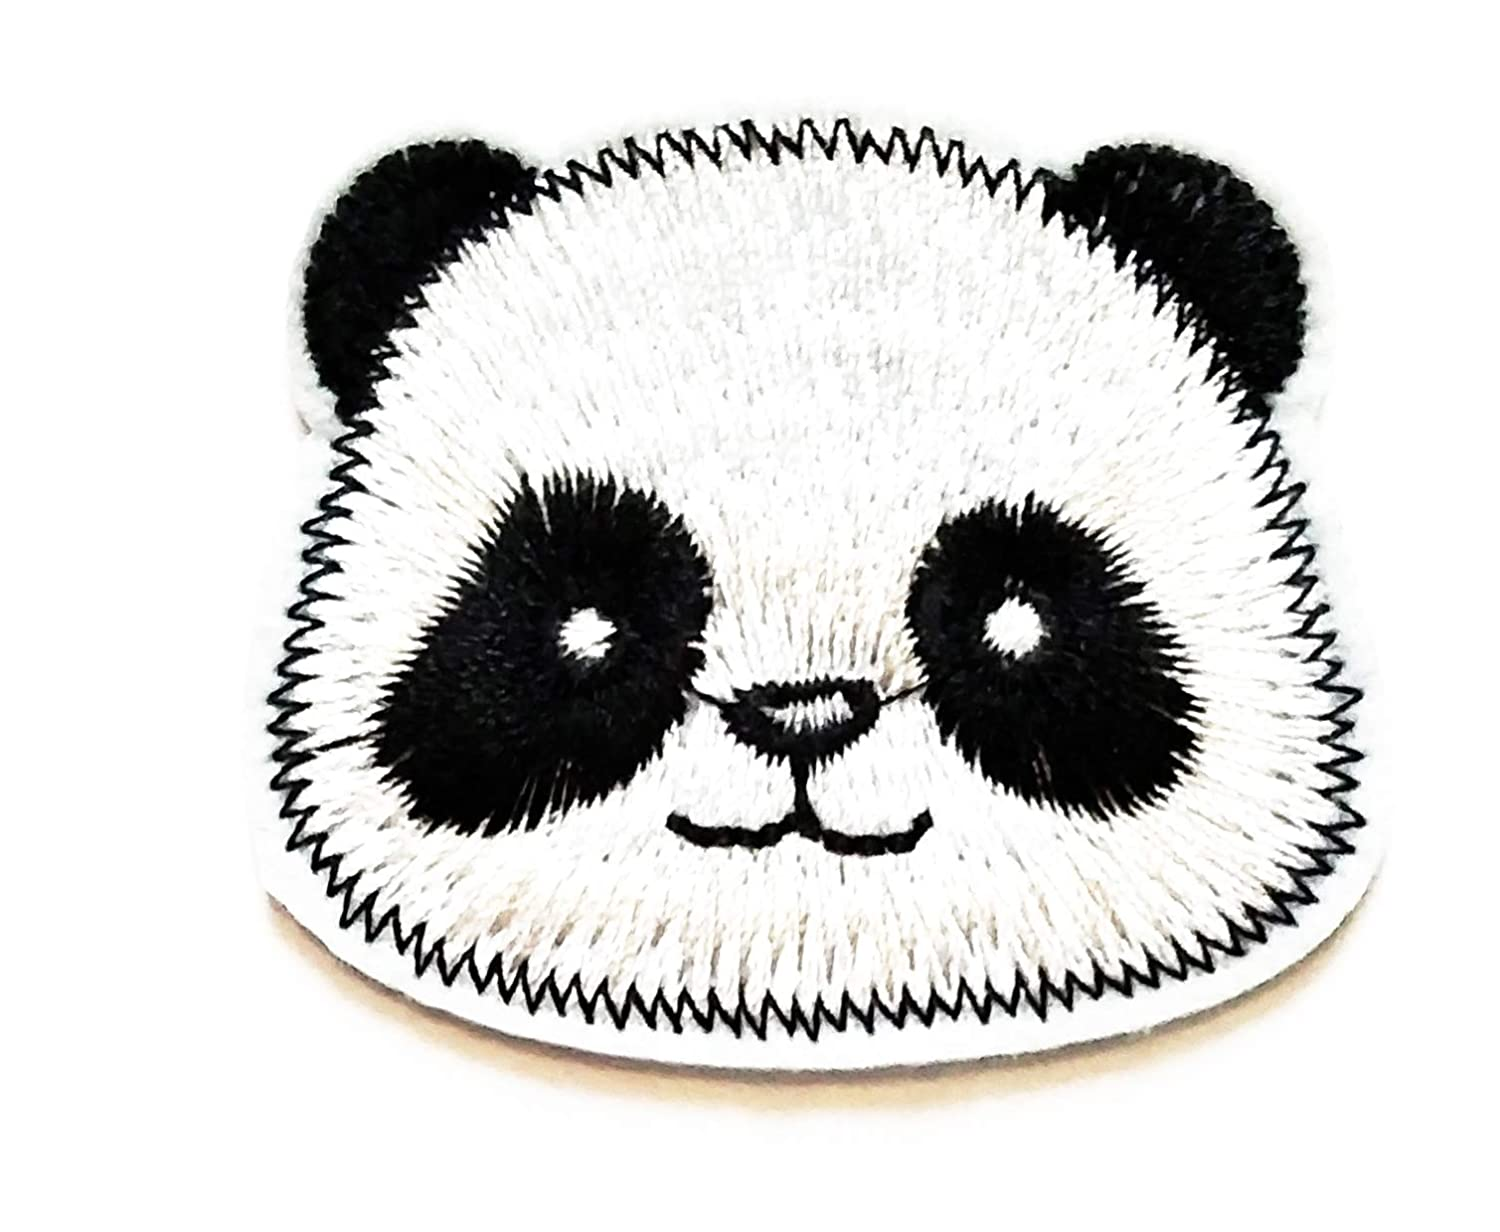 Nipitshop Patches Cute Head Chinese Panda Animal Cartoon Kids Patch Embroidered Iron On Patch for Clothes Backpacks T-Shirt Jeans Skirt Vests Scarf Hat Bag